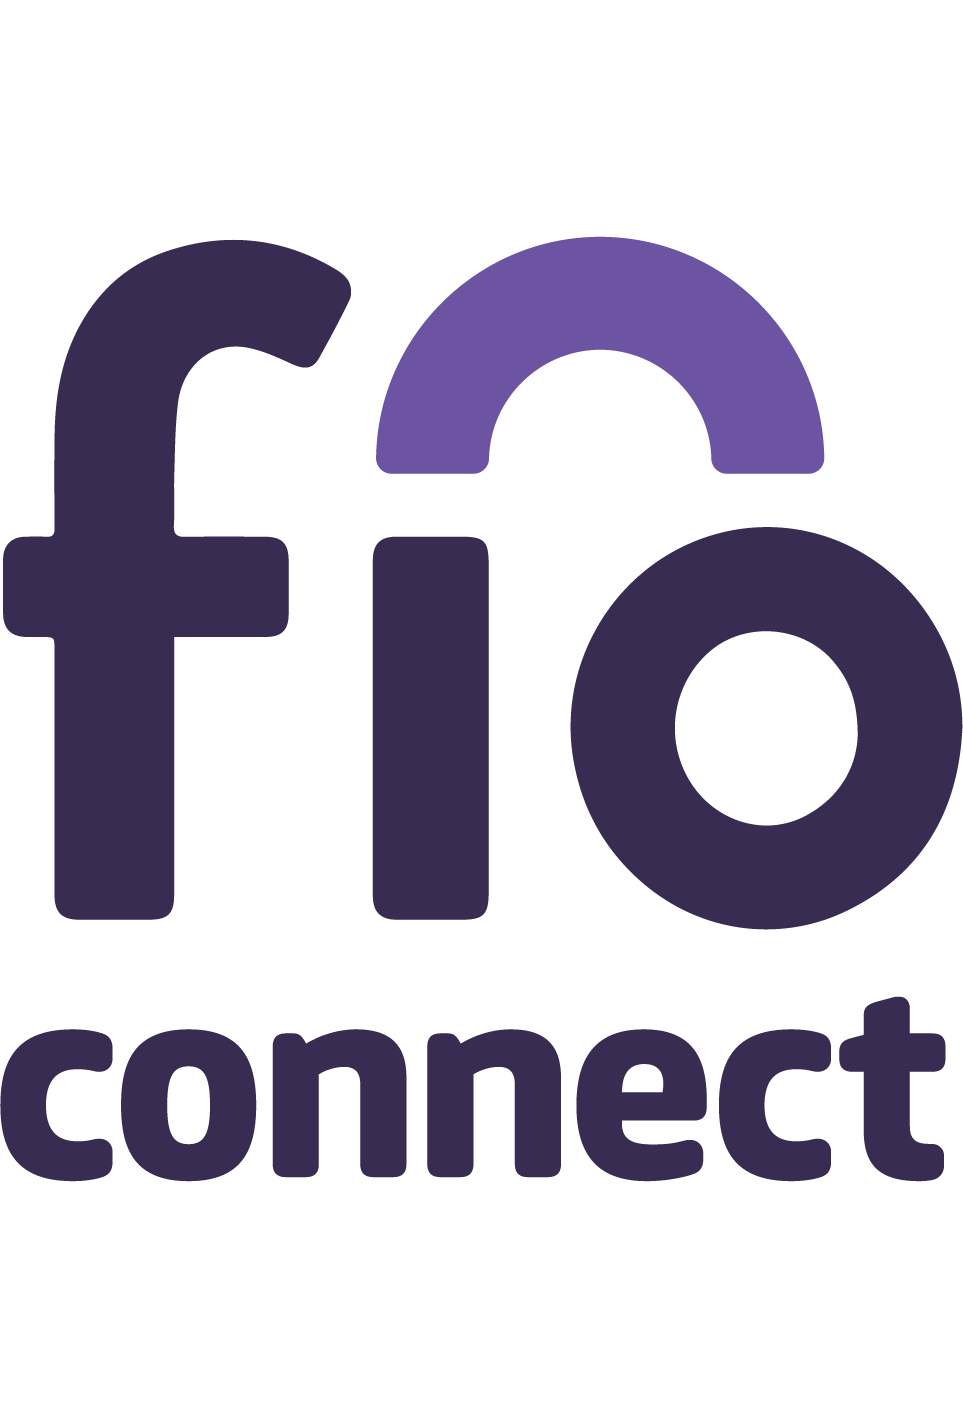 Fio Connect